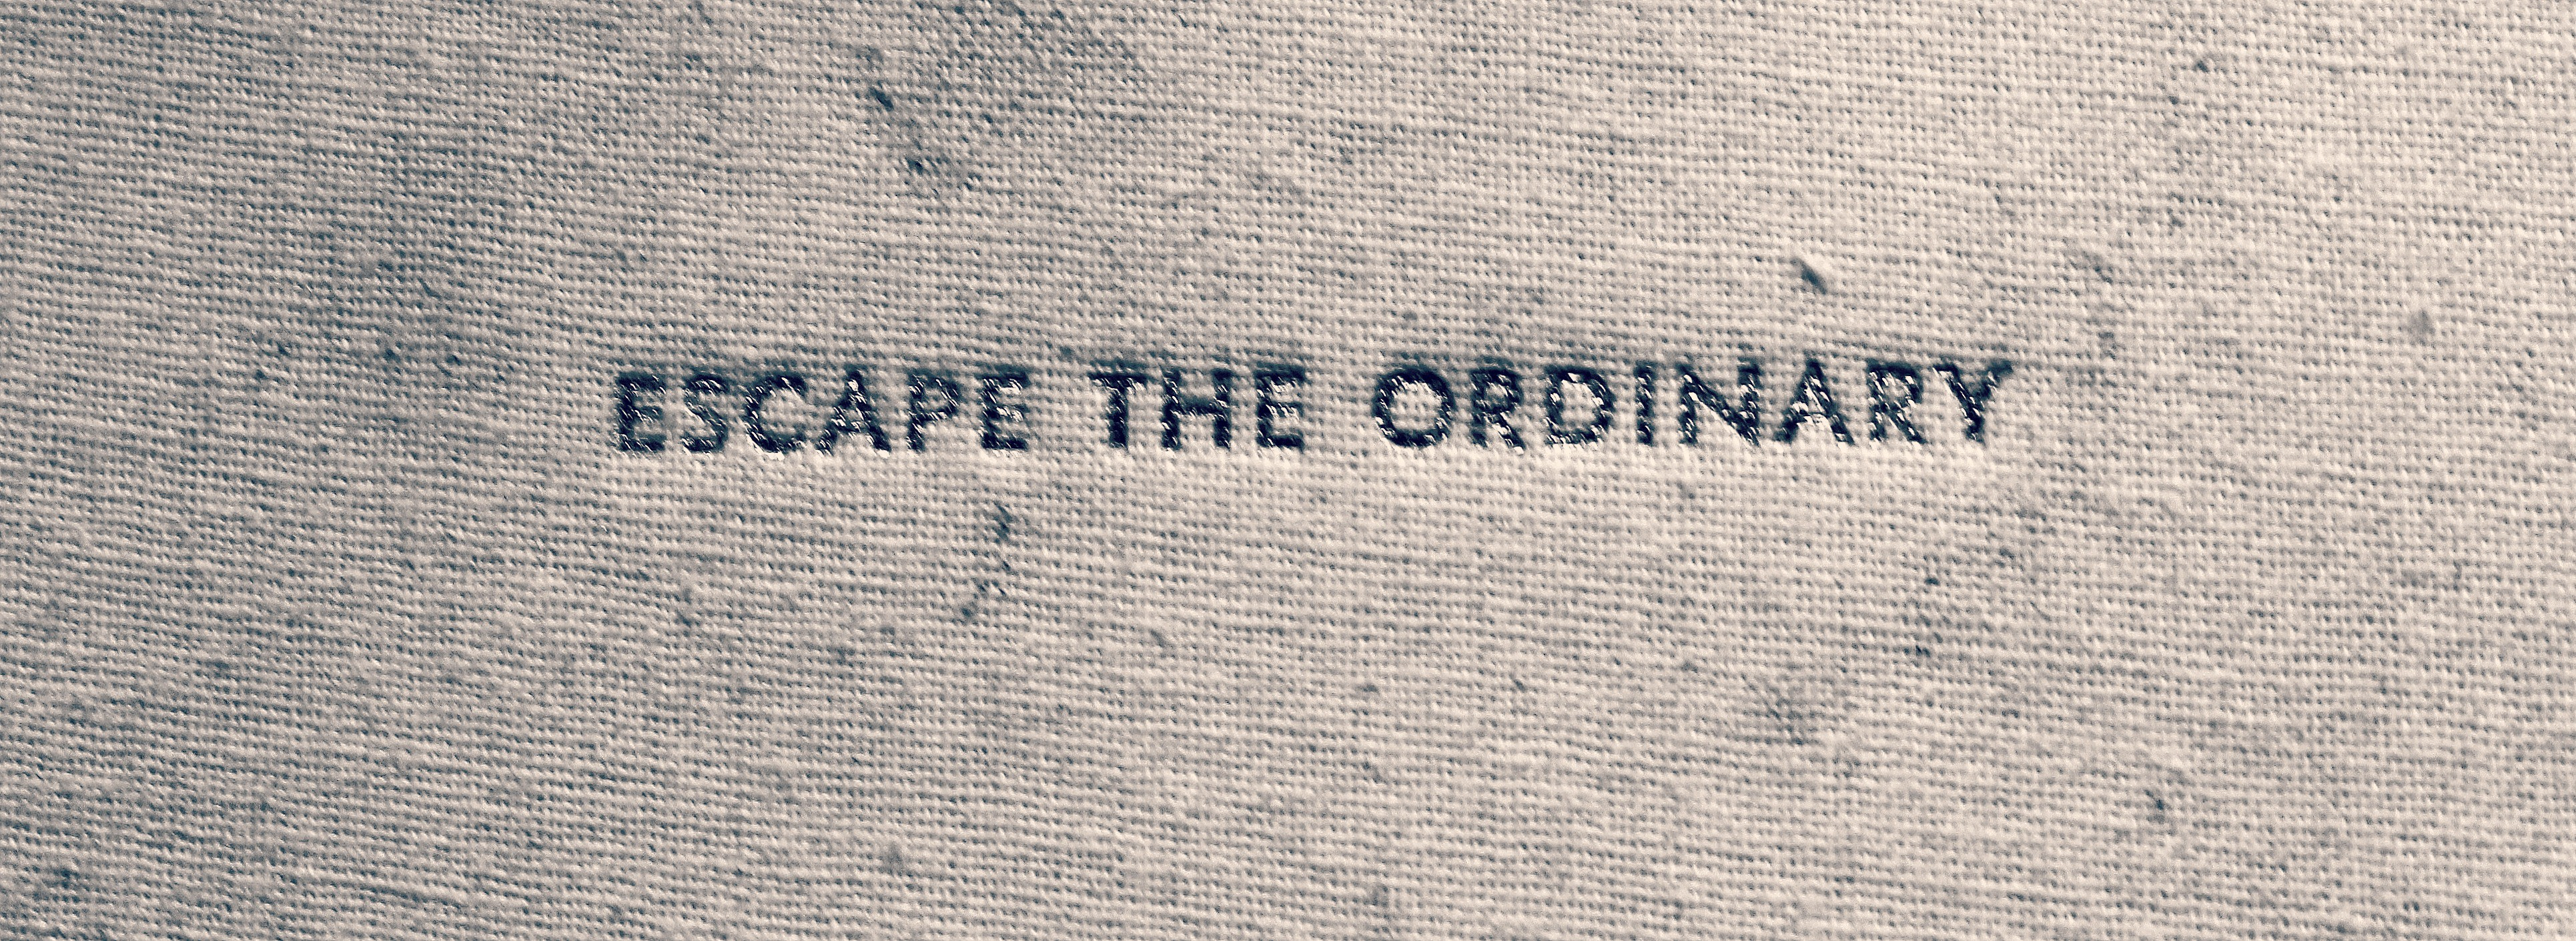 Escape The Ordinary… What Does That Mean? - YouAlberta - Medium